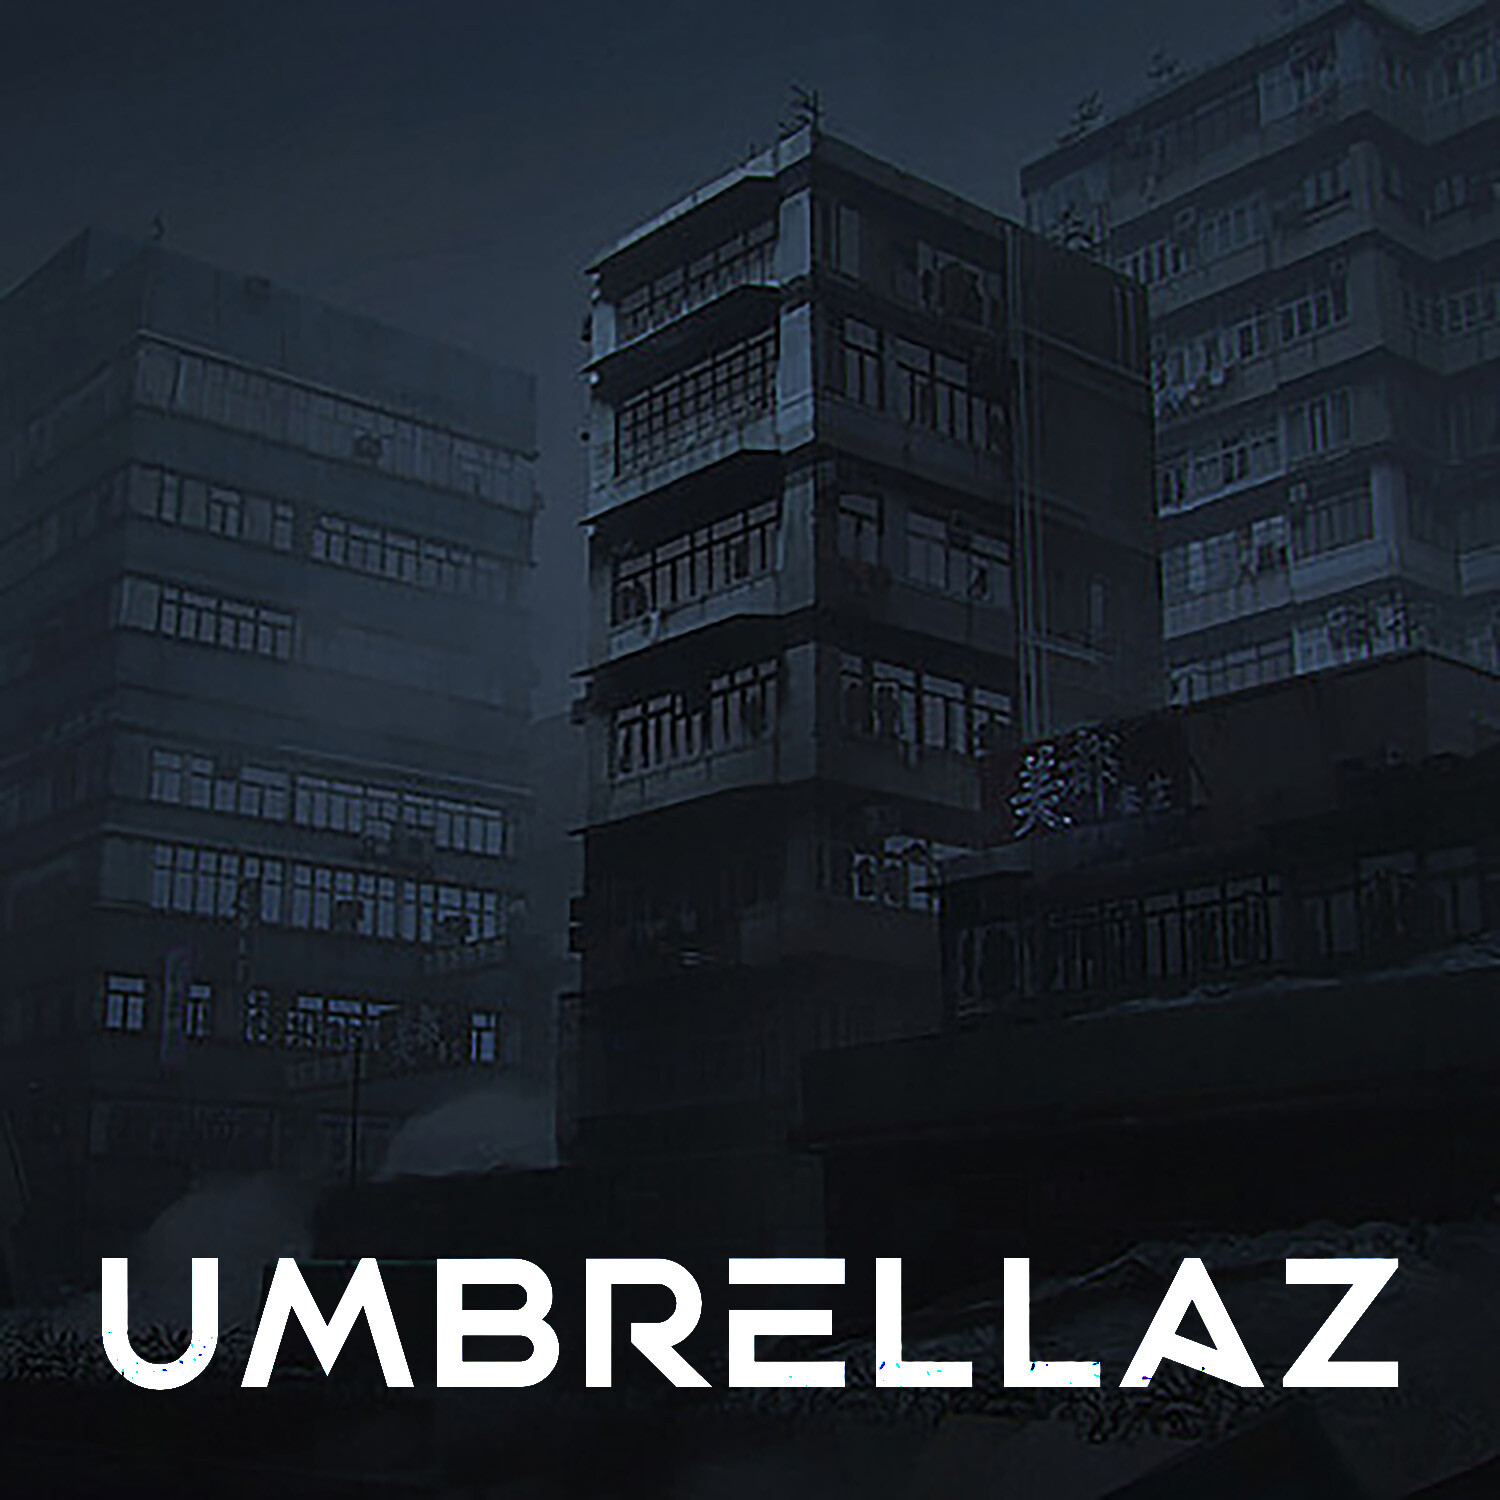 UMBRELLAz - Rebel hiding place